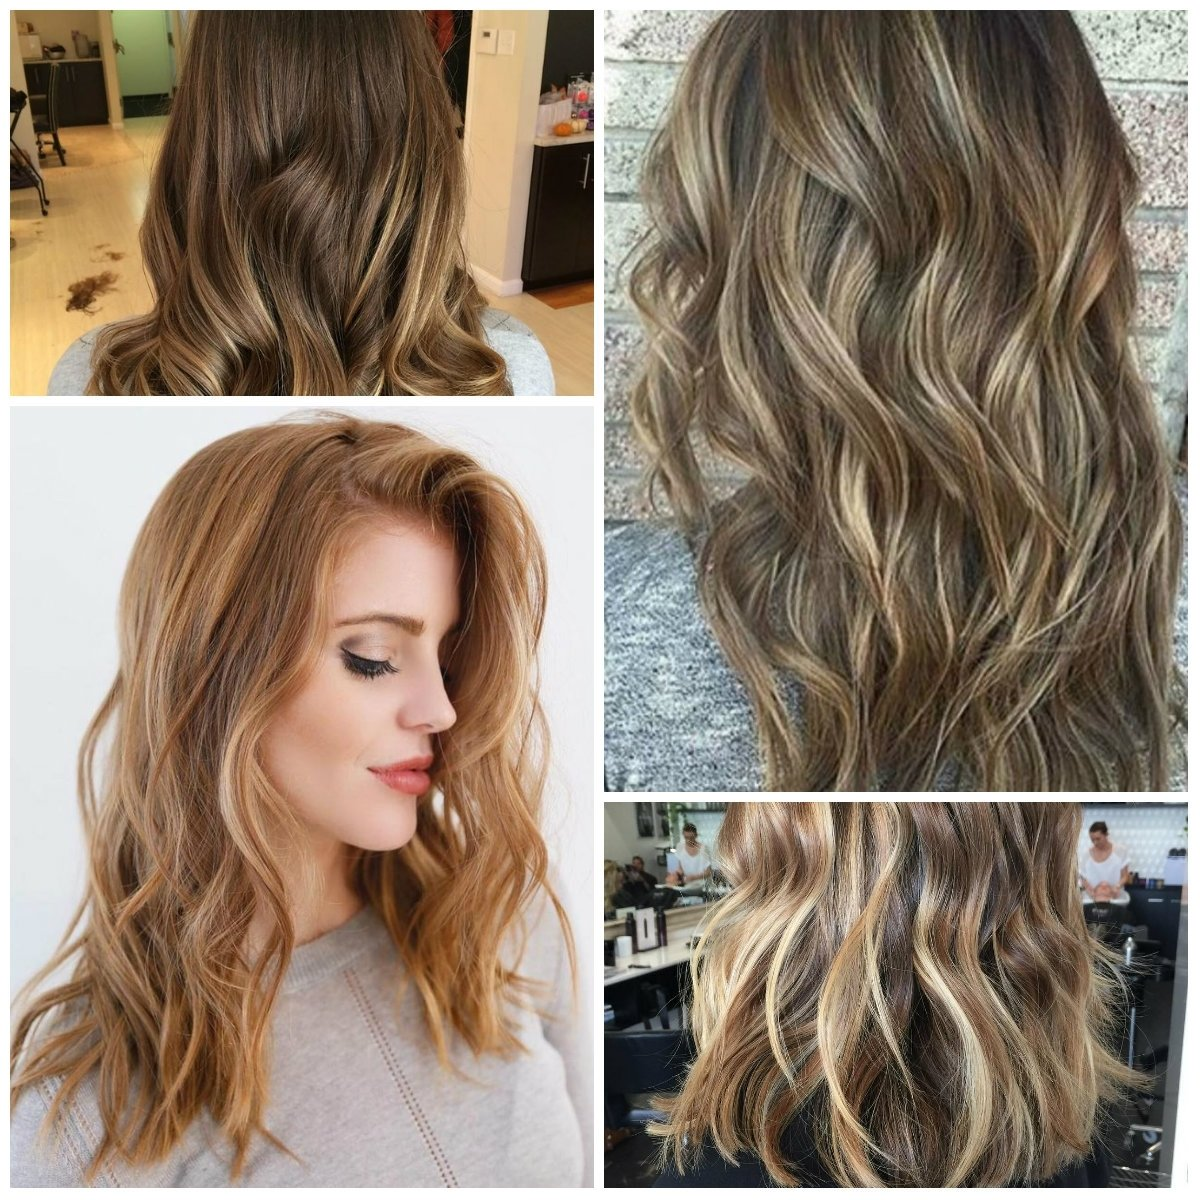 10 Attractive Highlight Ideas For Light Brown Hair light brown hair colors with highlights for 2017 best hair color 3 2020